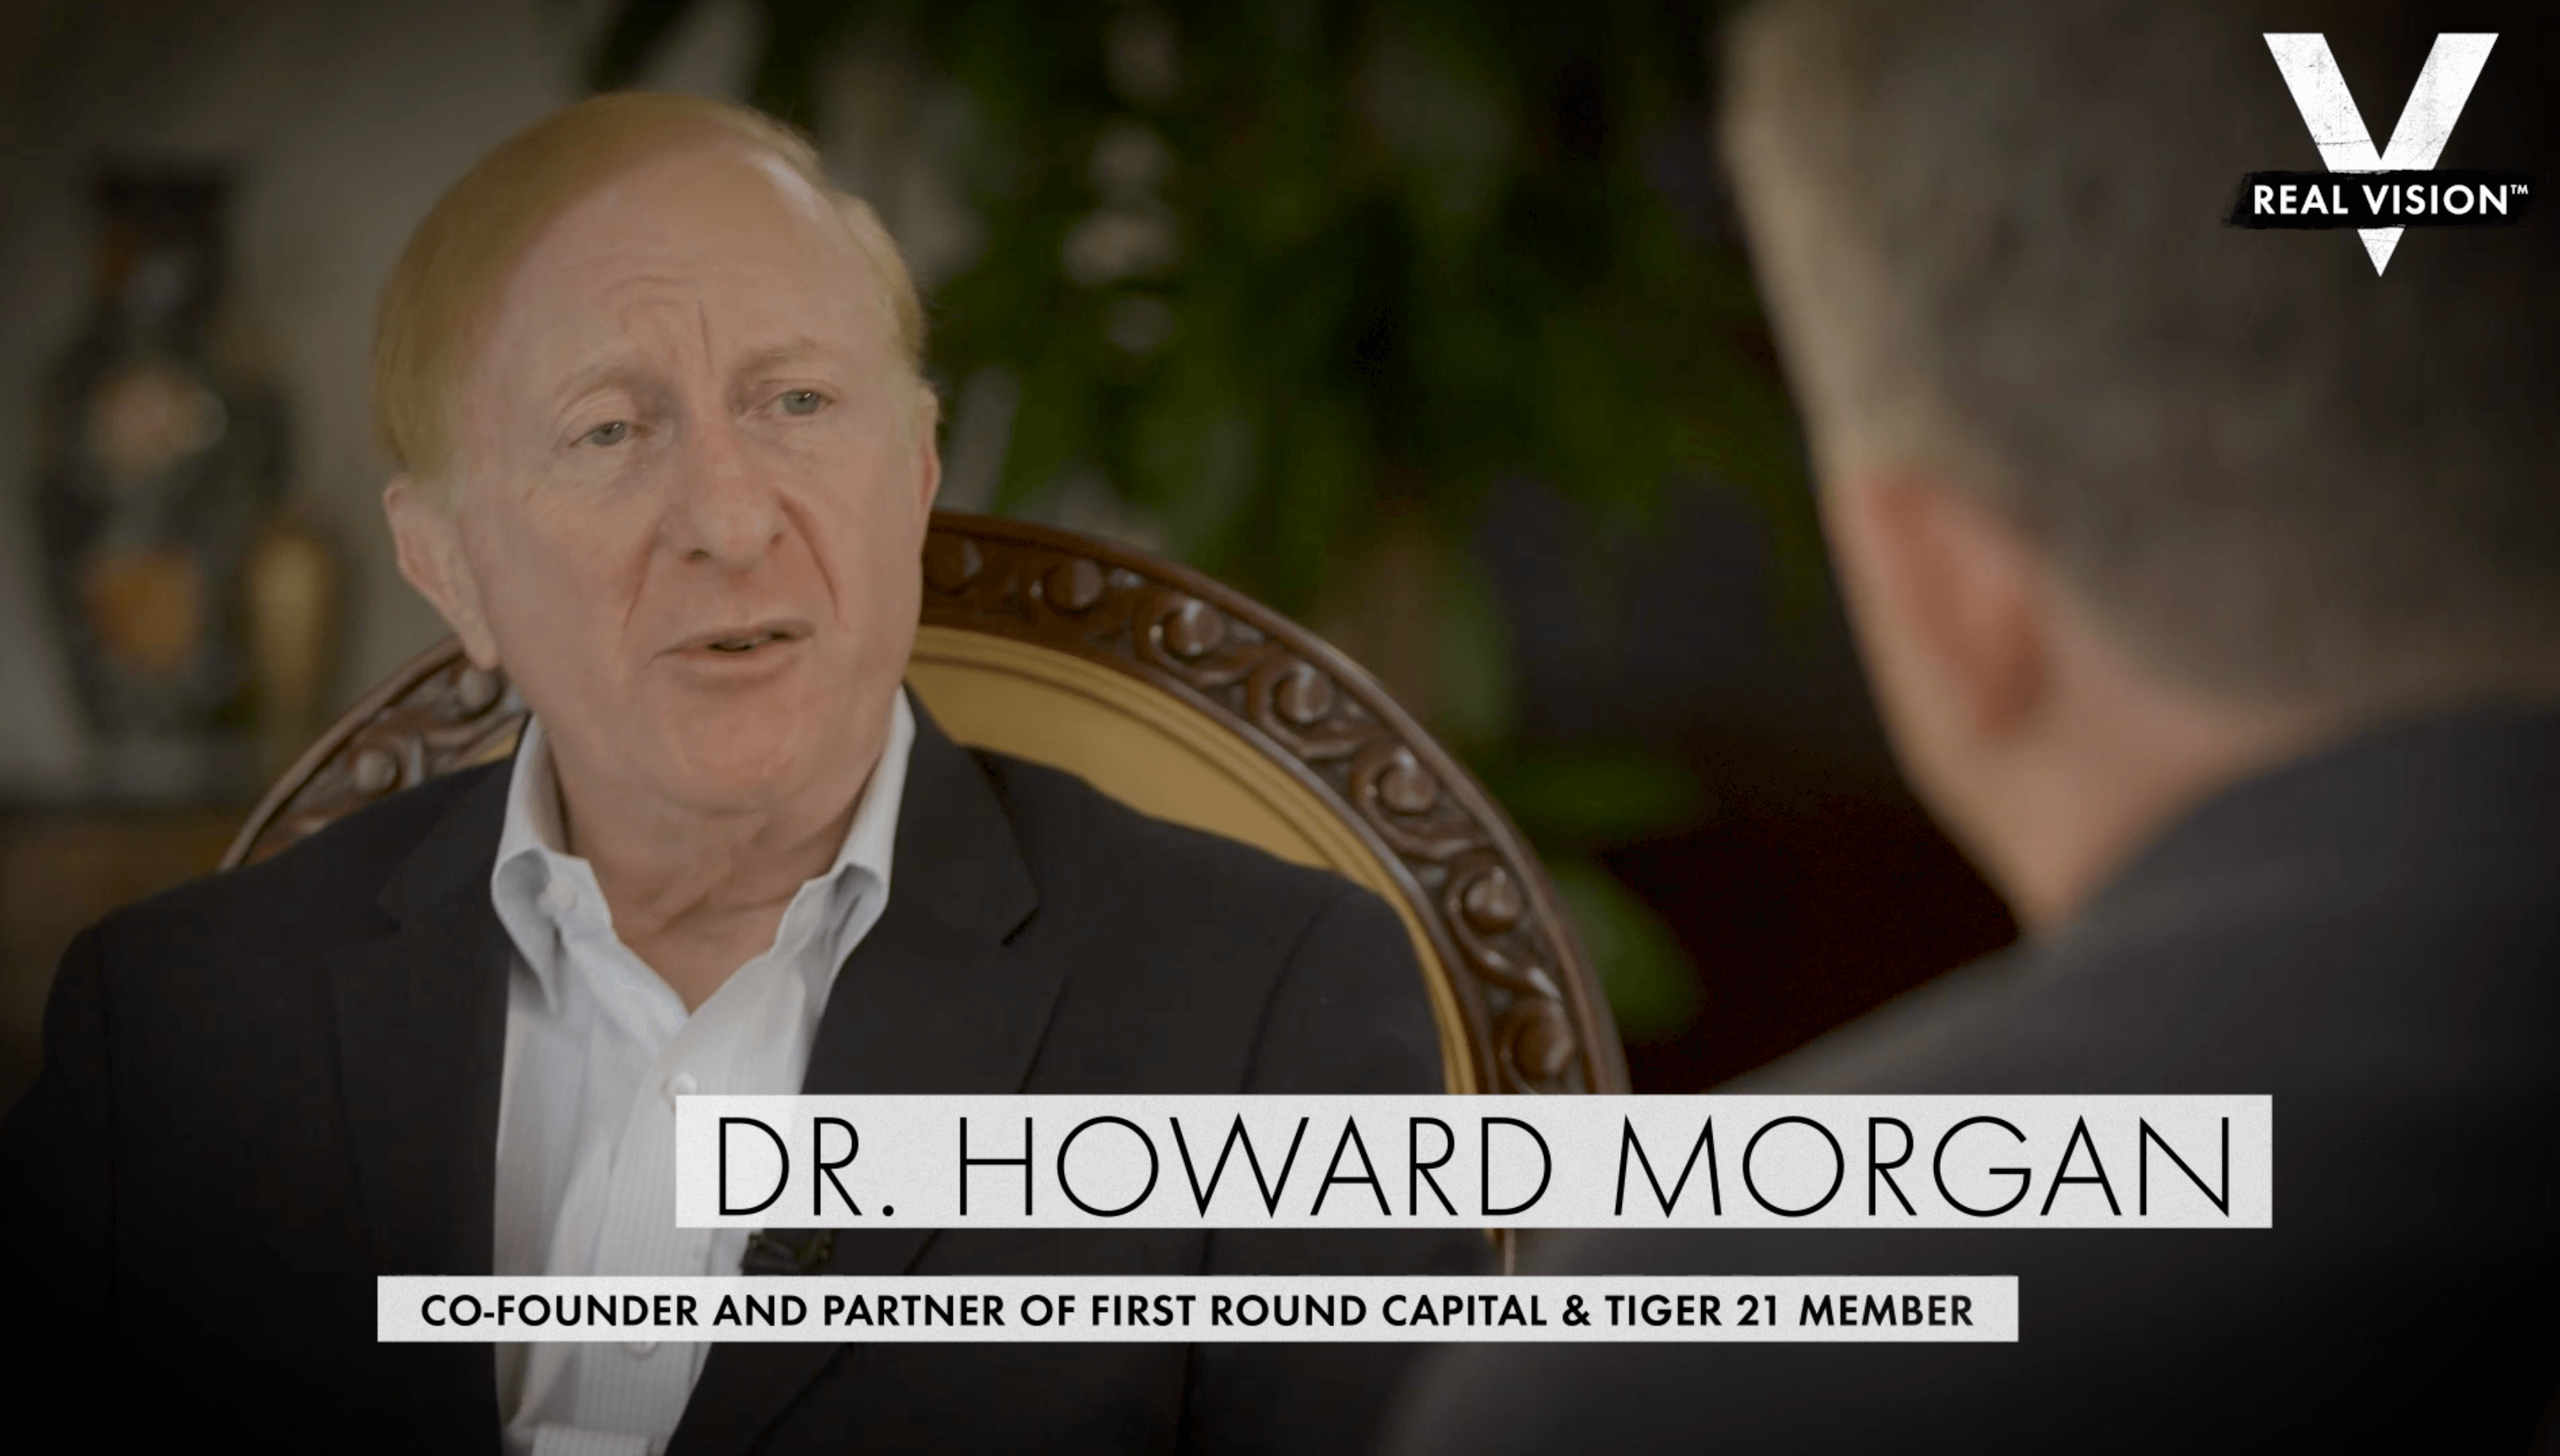 TIGER 21 MEMBER AND CO-FOUNDER OF FIRST ROUND CAPITAL, DR. HOWARD MORGAN, DISCUSSES STARTUP FAILURE AND SUCCESS